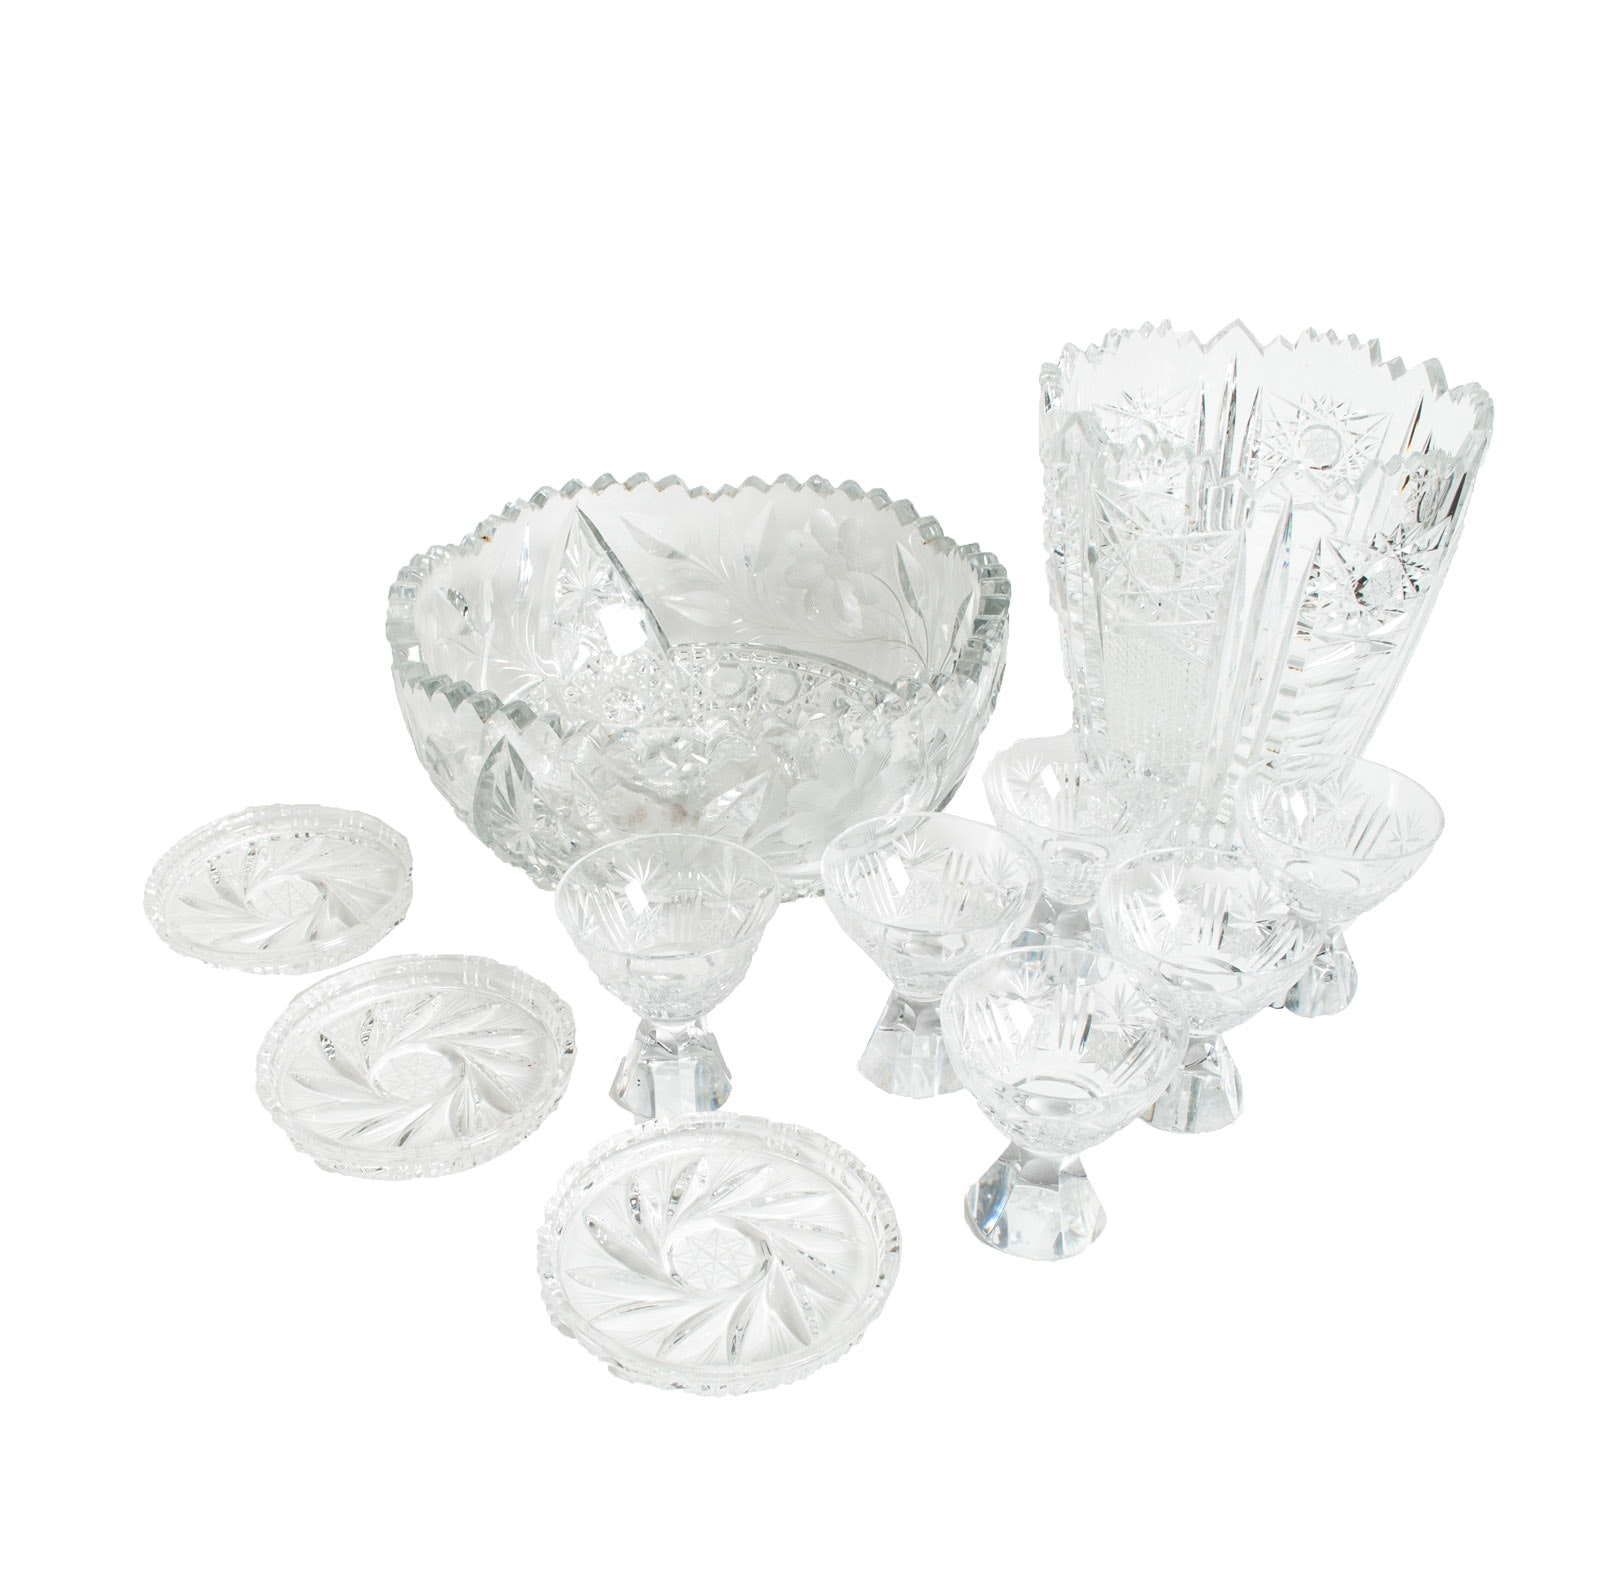 American Brilliant Period and Cut Glass Assortment